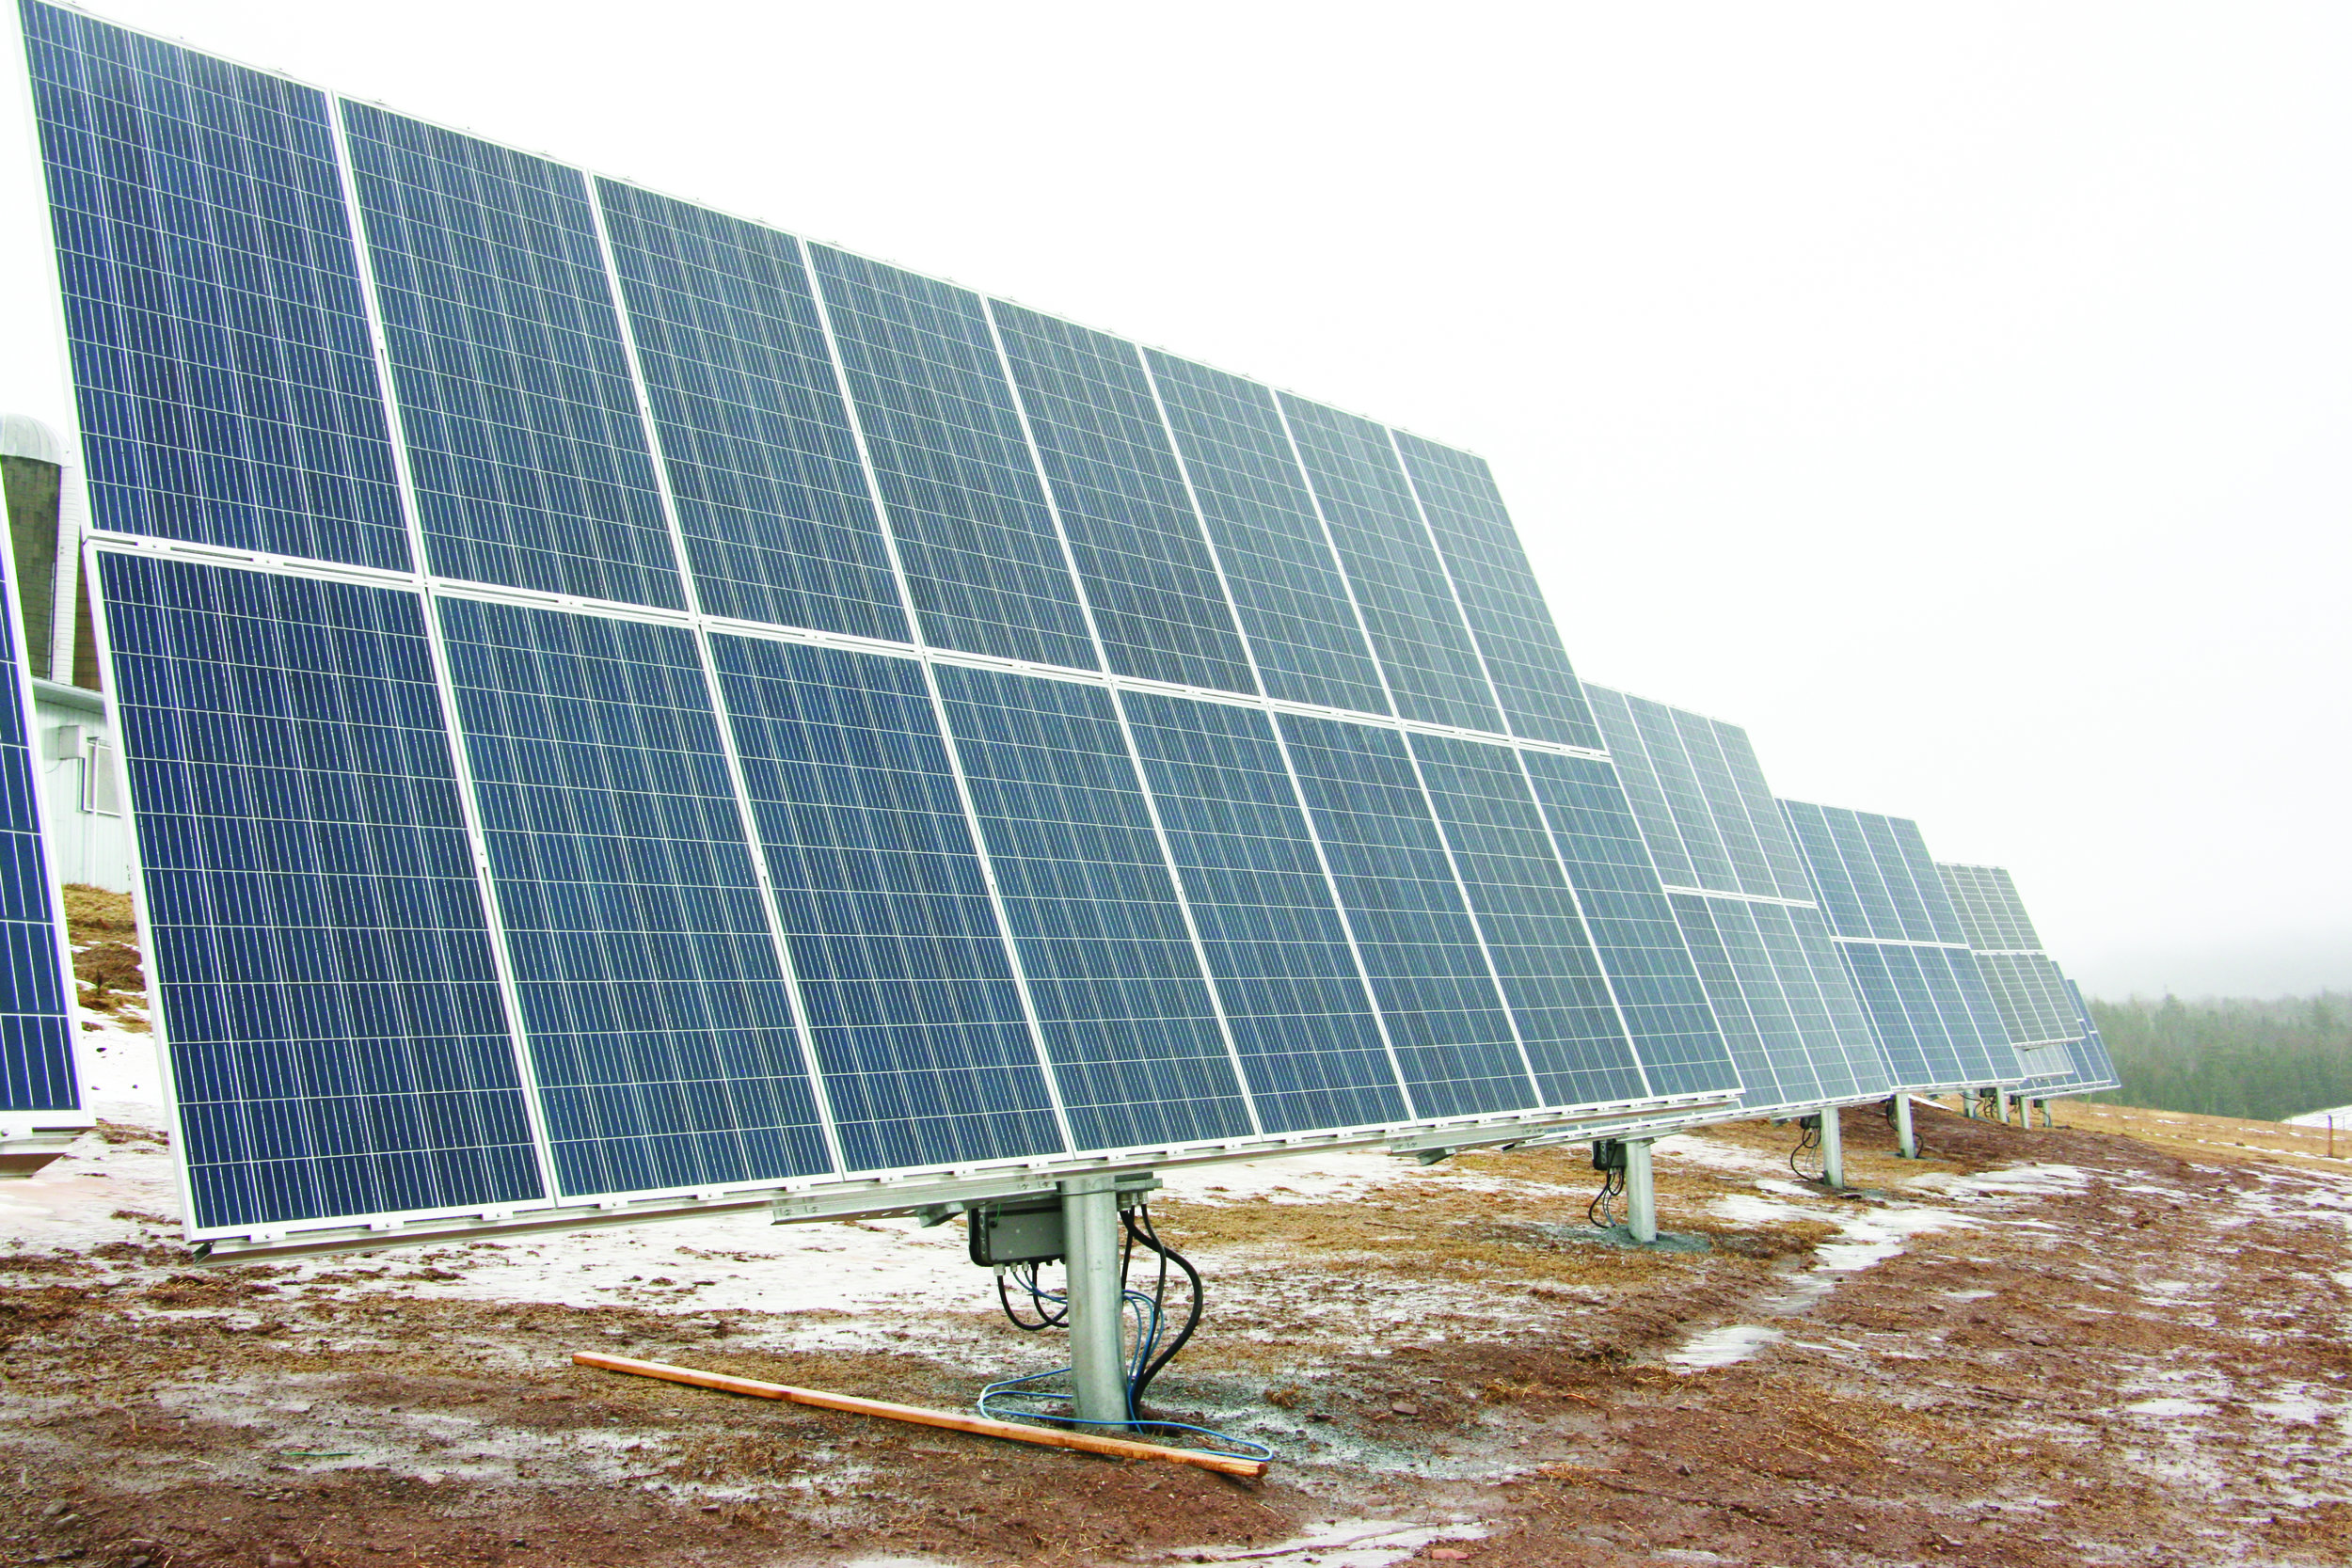 The first phase of the Auenland Farm project has 350 solar panels collecting the sun's energy. (George Fullerton photo)